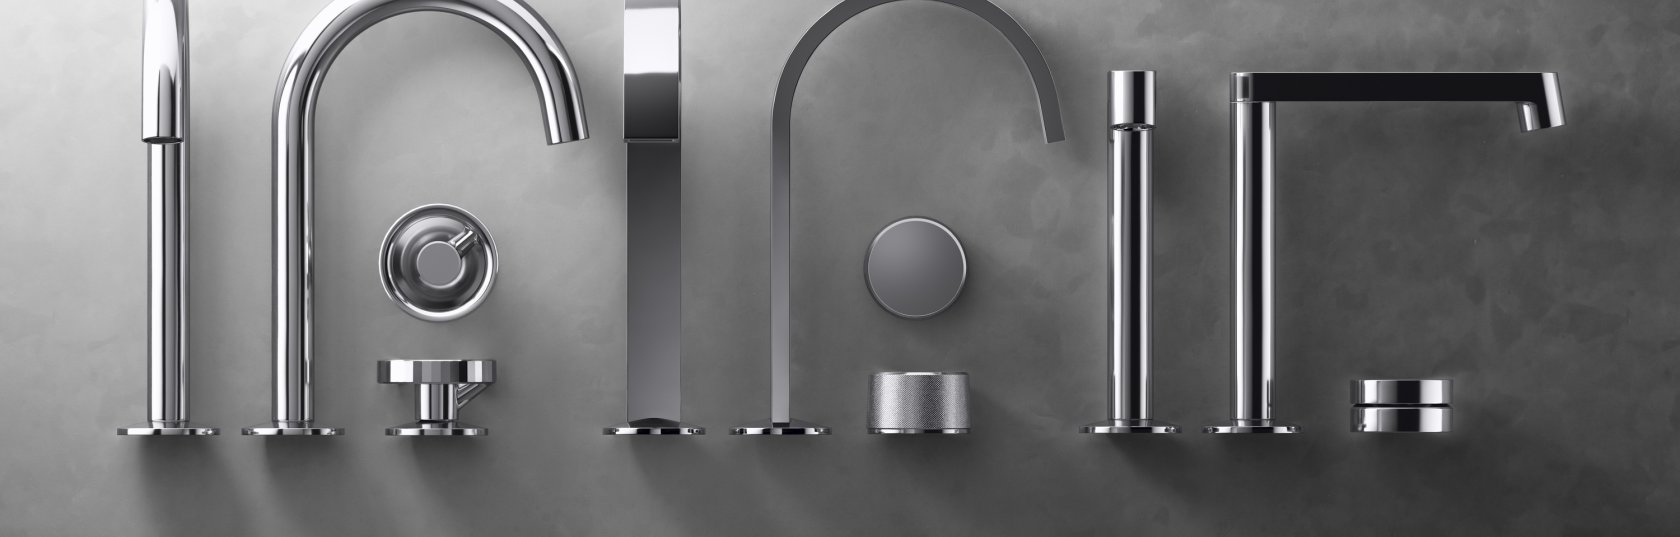 Designed to be designed: Components by Kohler